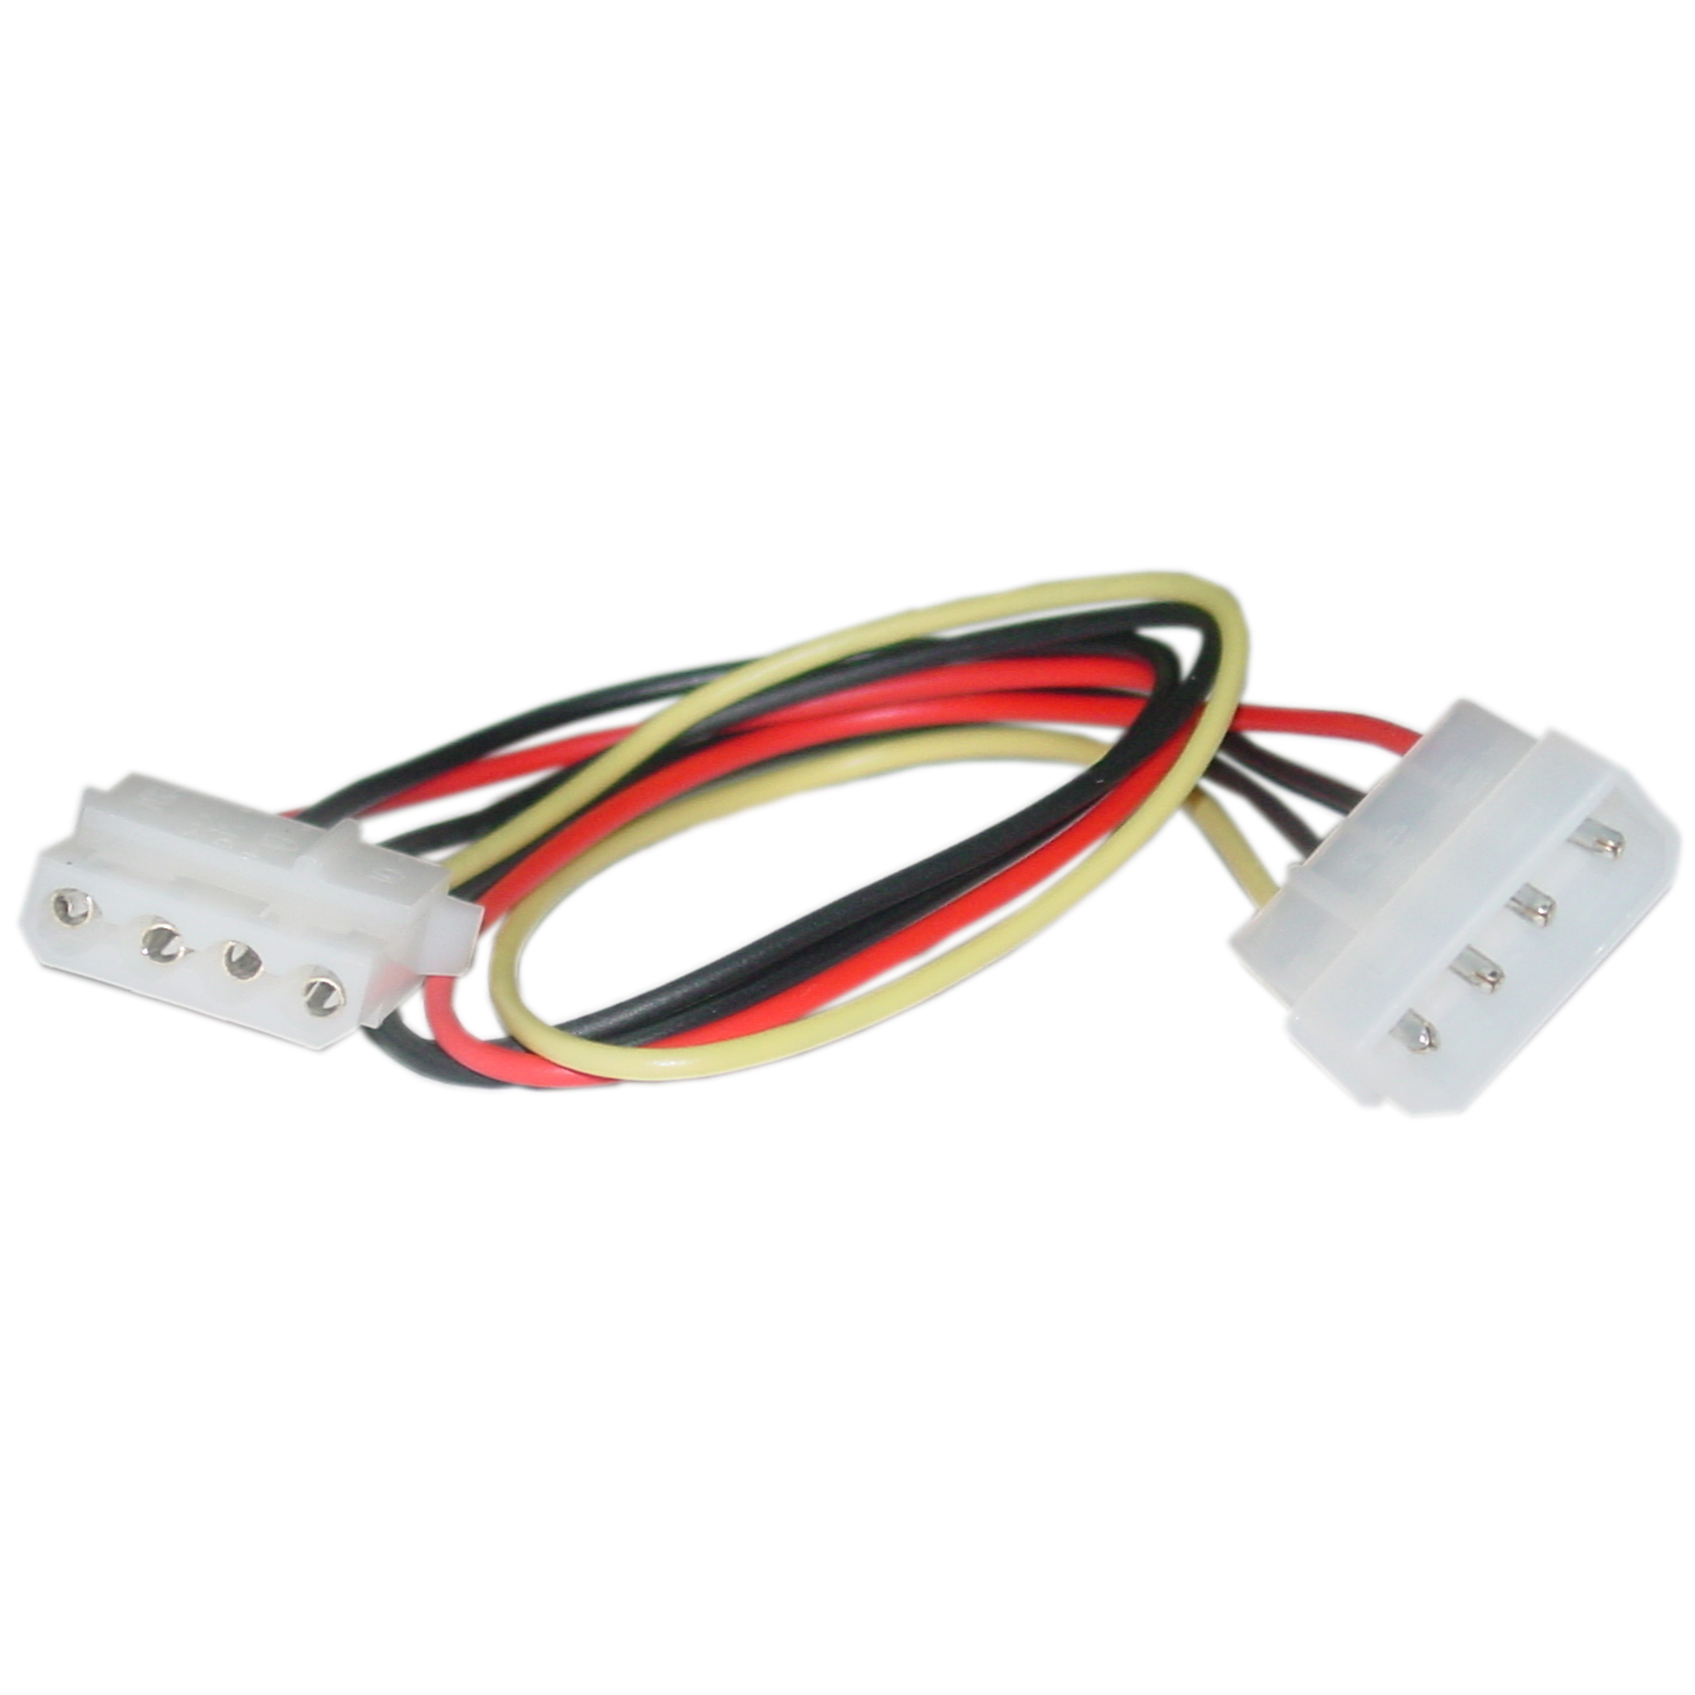 ACL 8 Inch 4 Pin Molex Male to Dual Female 5.25 inch 5.25 inch 5 Pack Power Cable